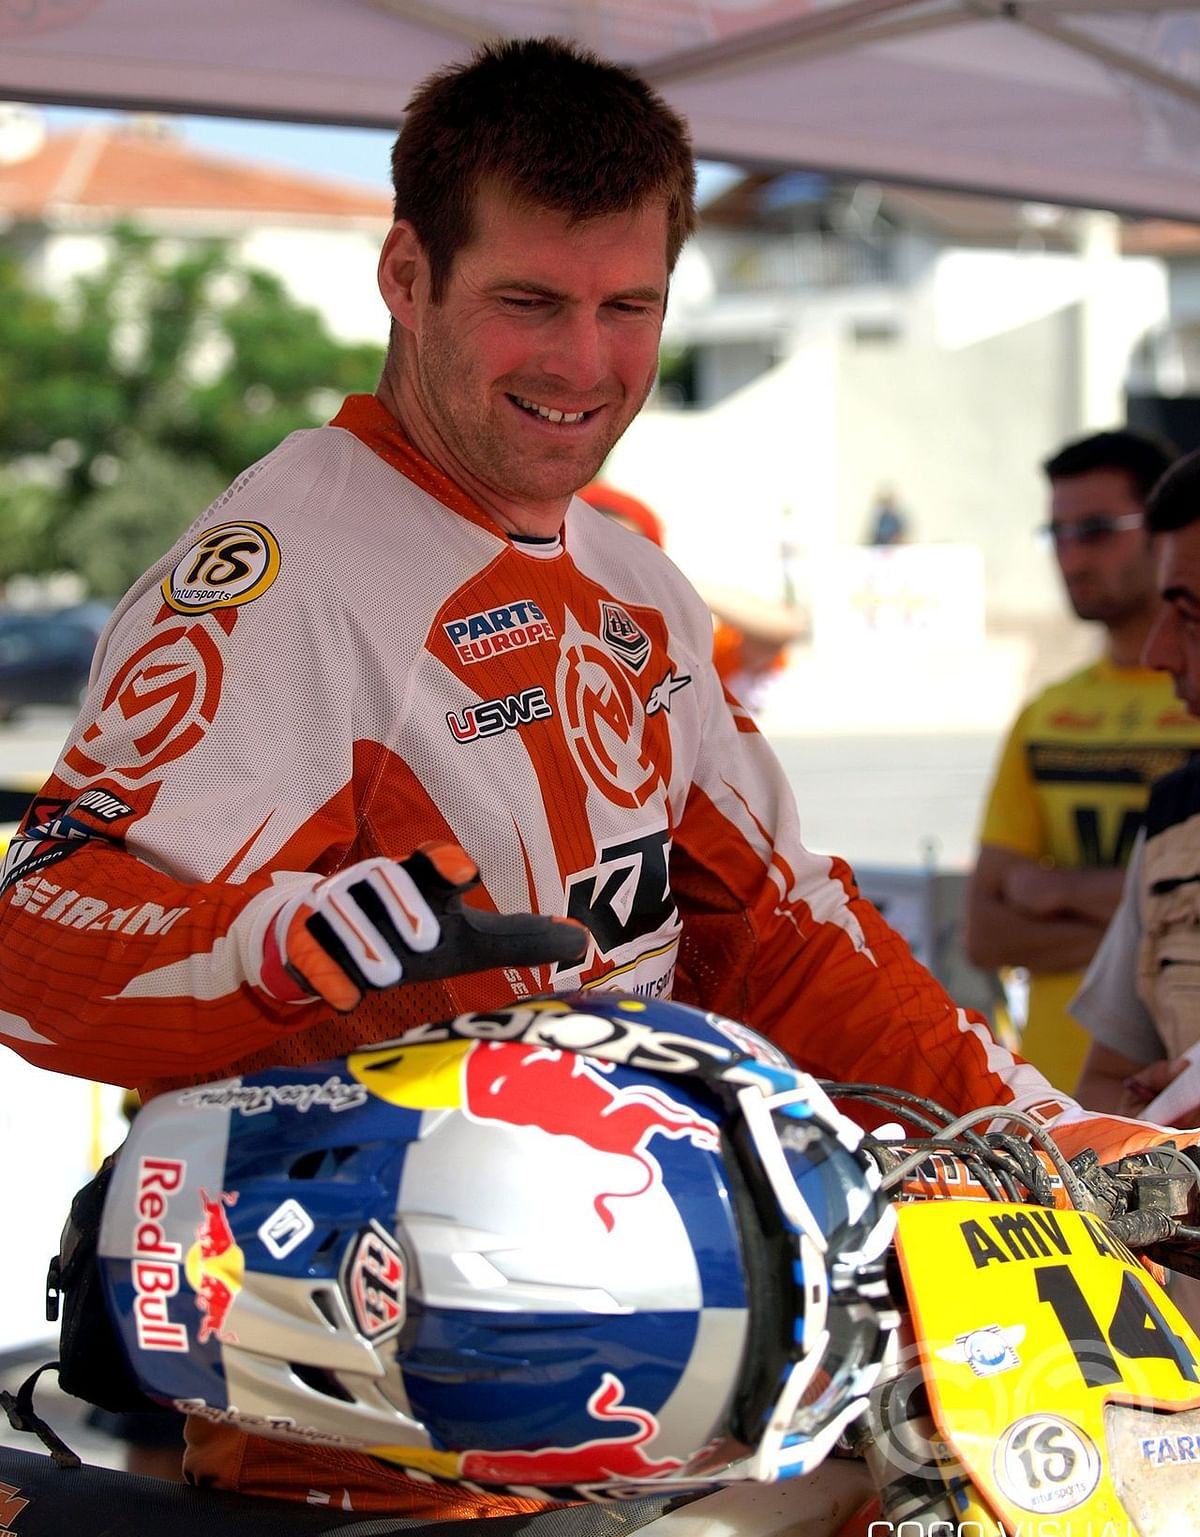 With a large contribution from fans, Knight managed to be there at 2021 Dakar